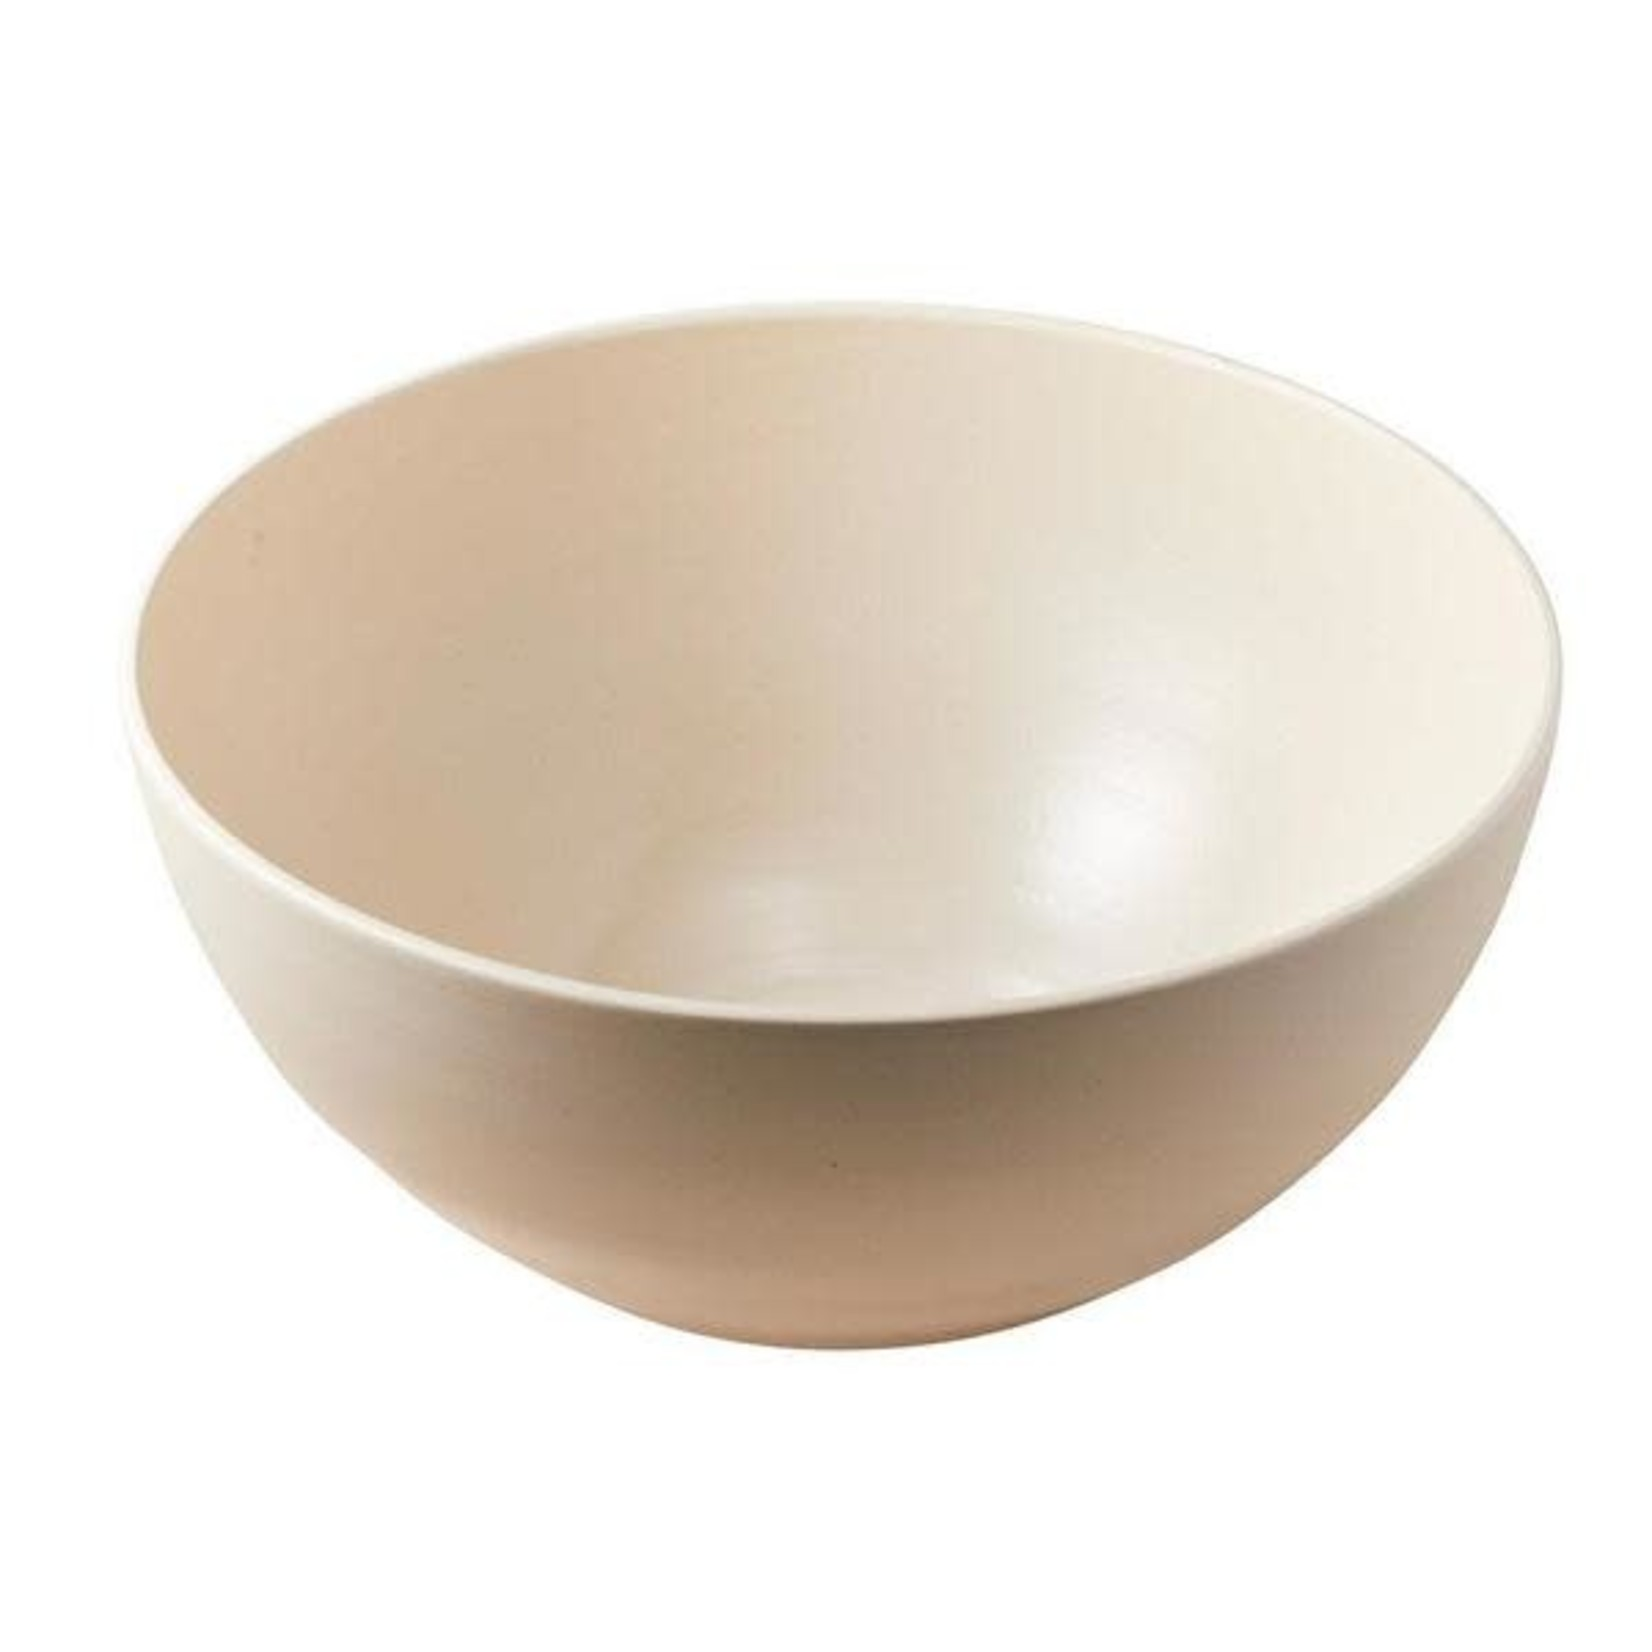 Style Union Home Forever Bowl